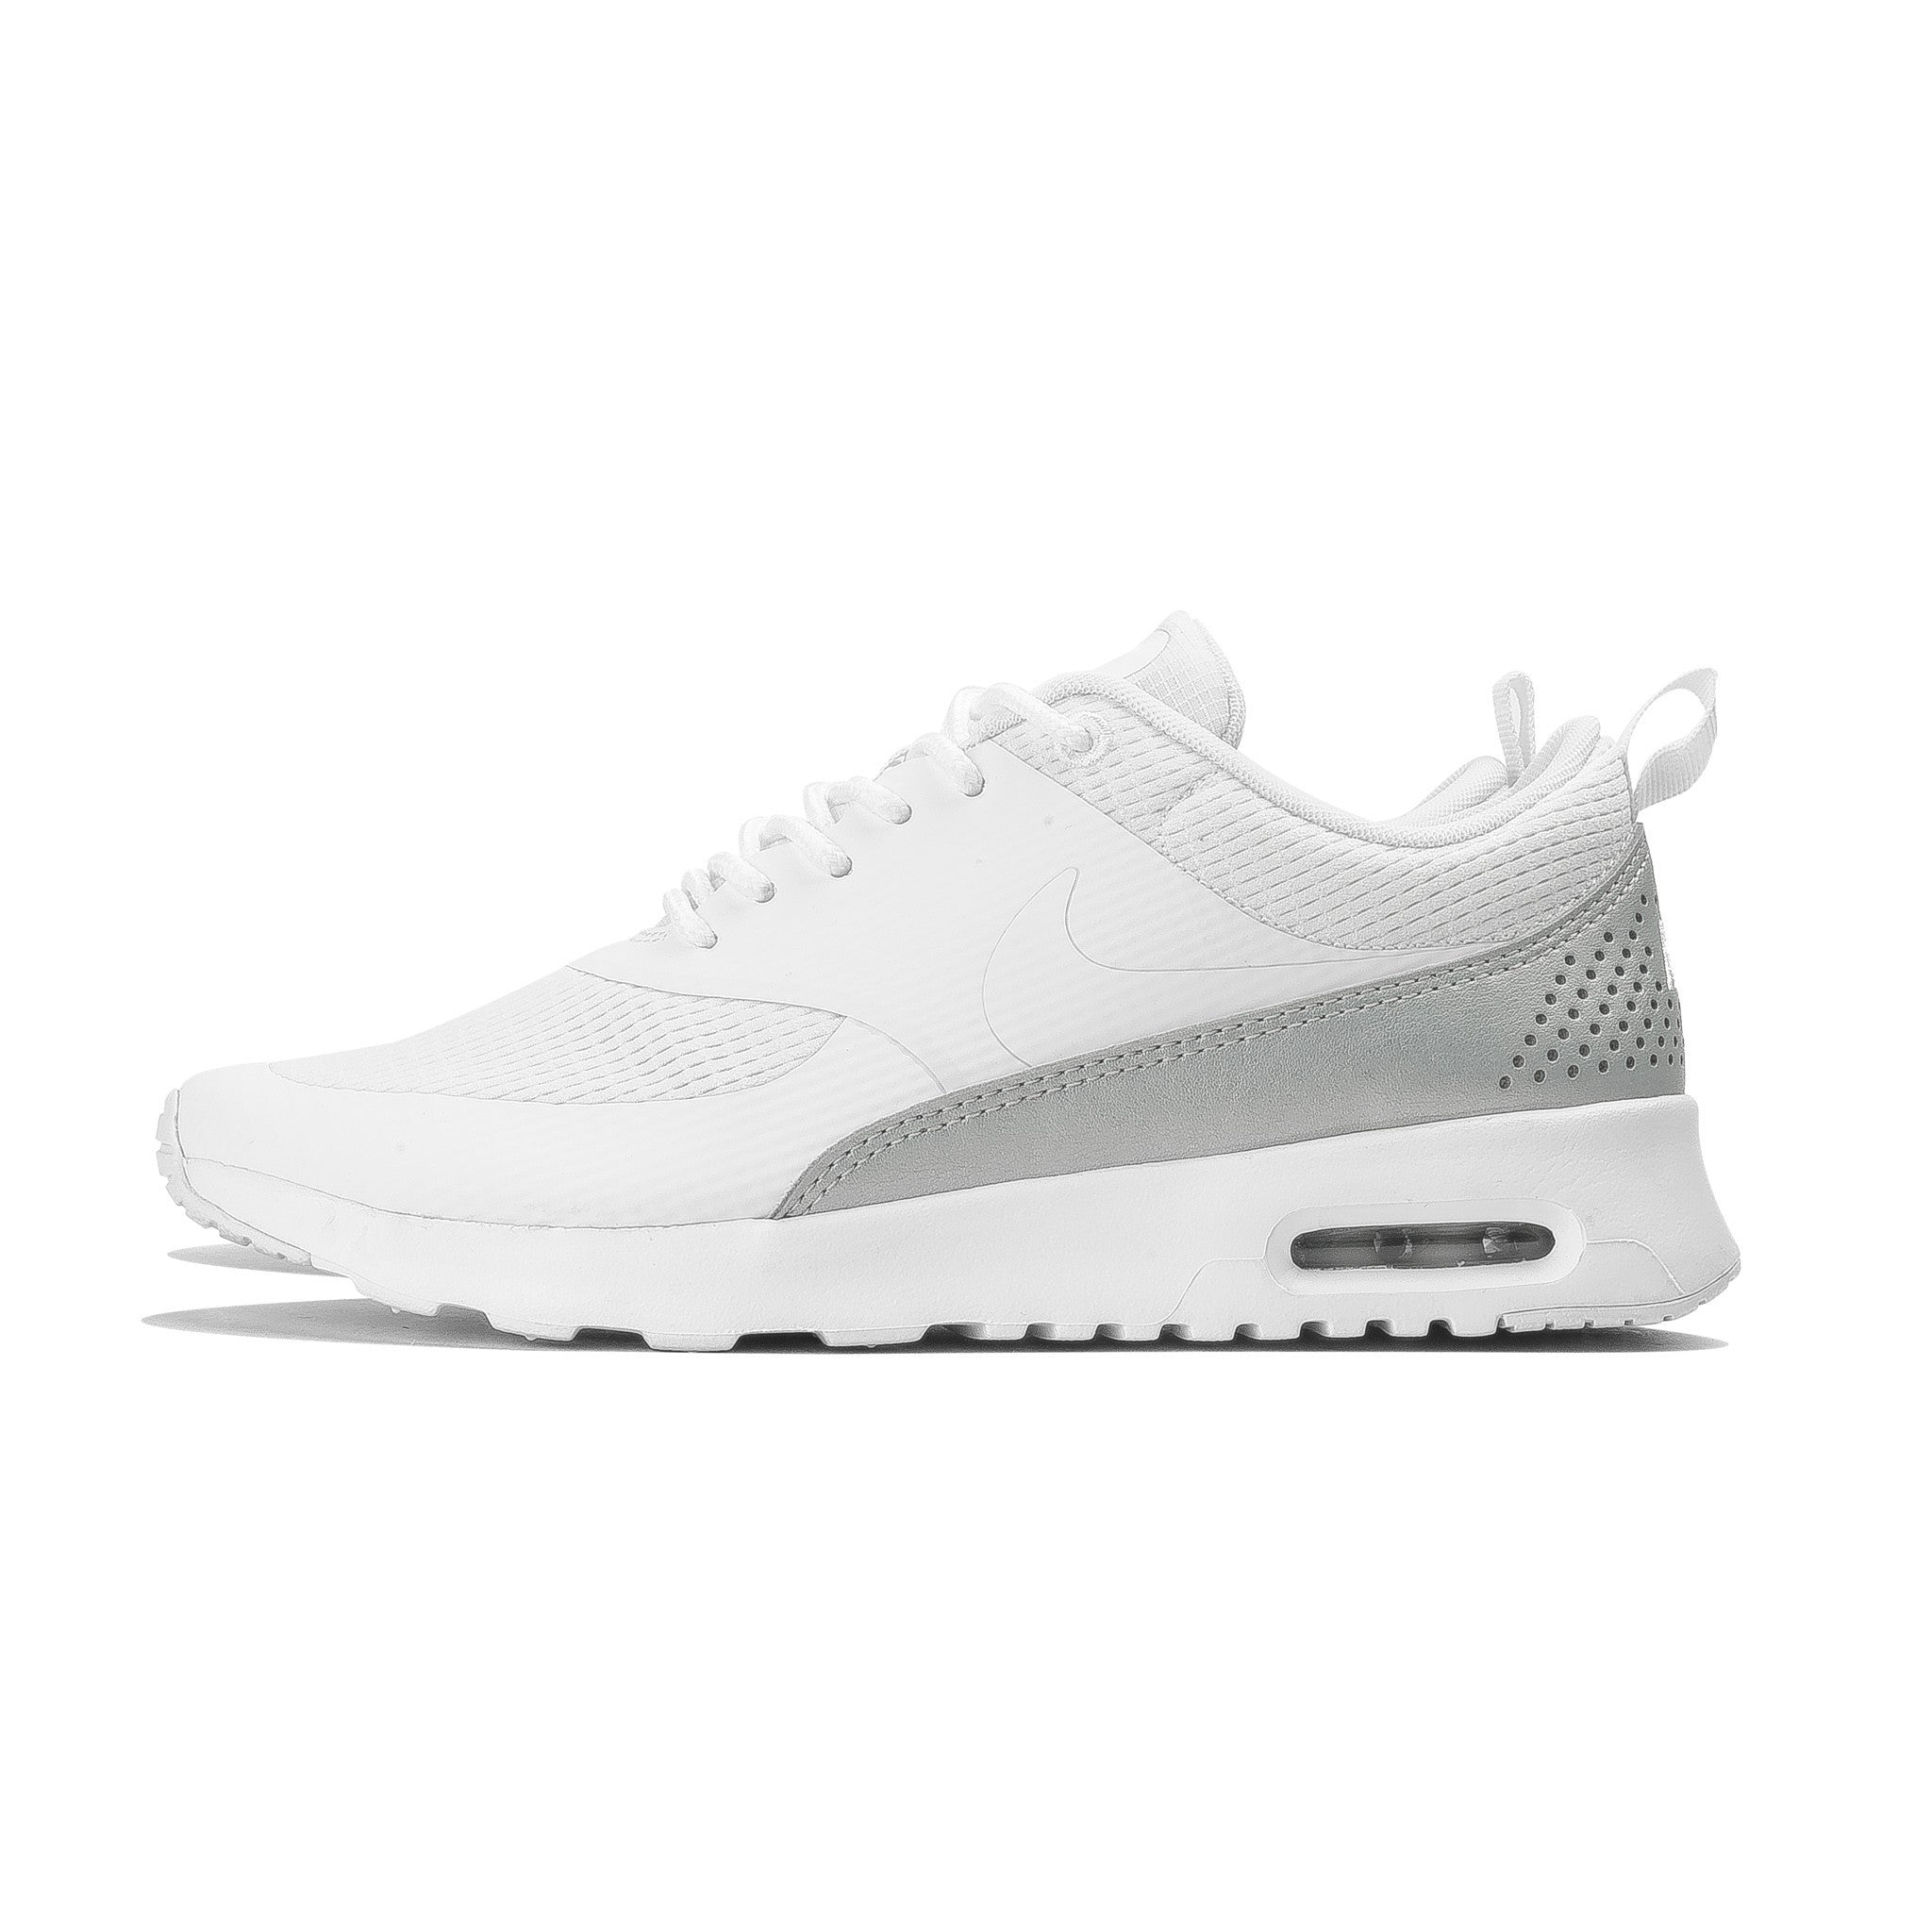 WMNS Air Max Thea TXT 819639-100 White